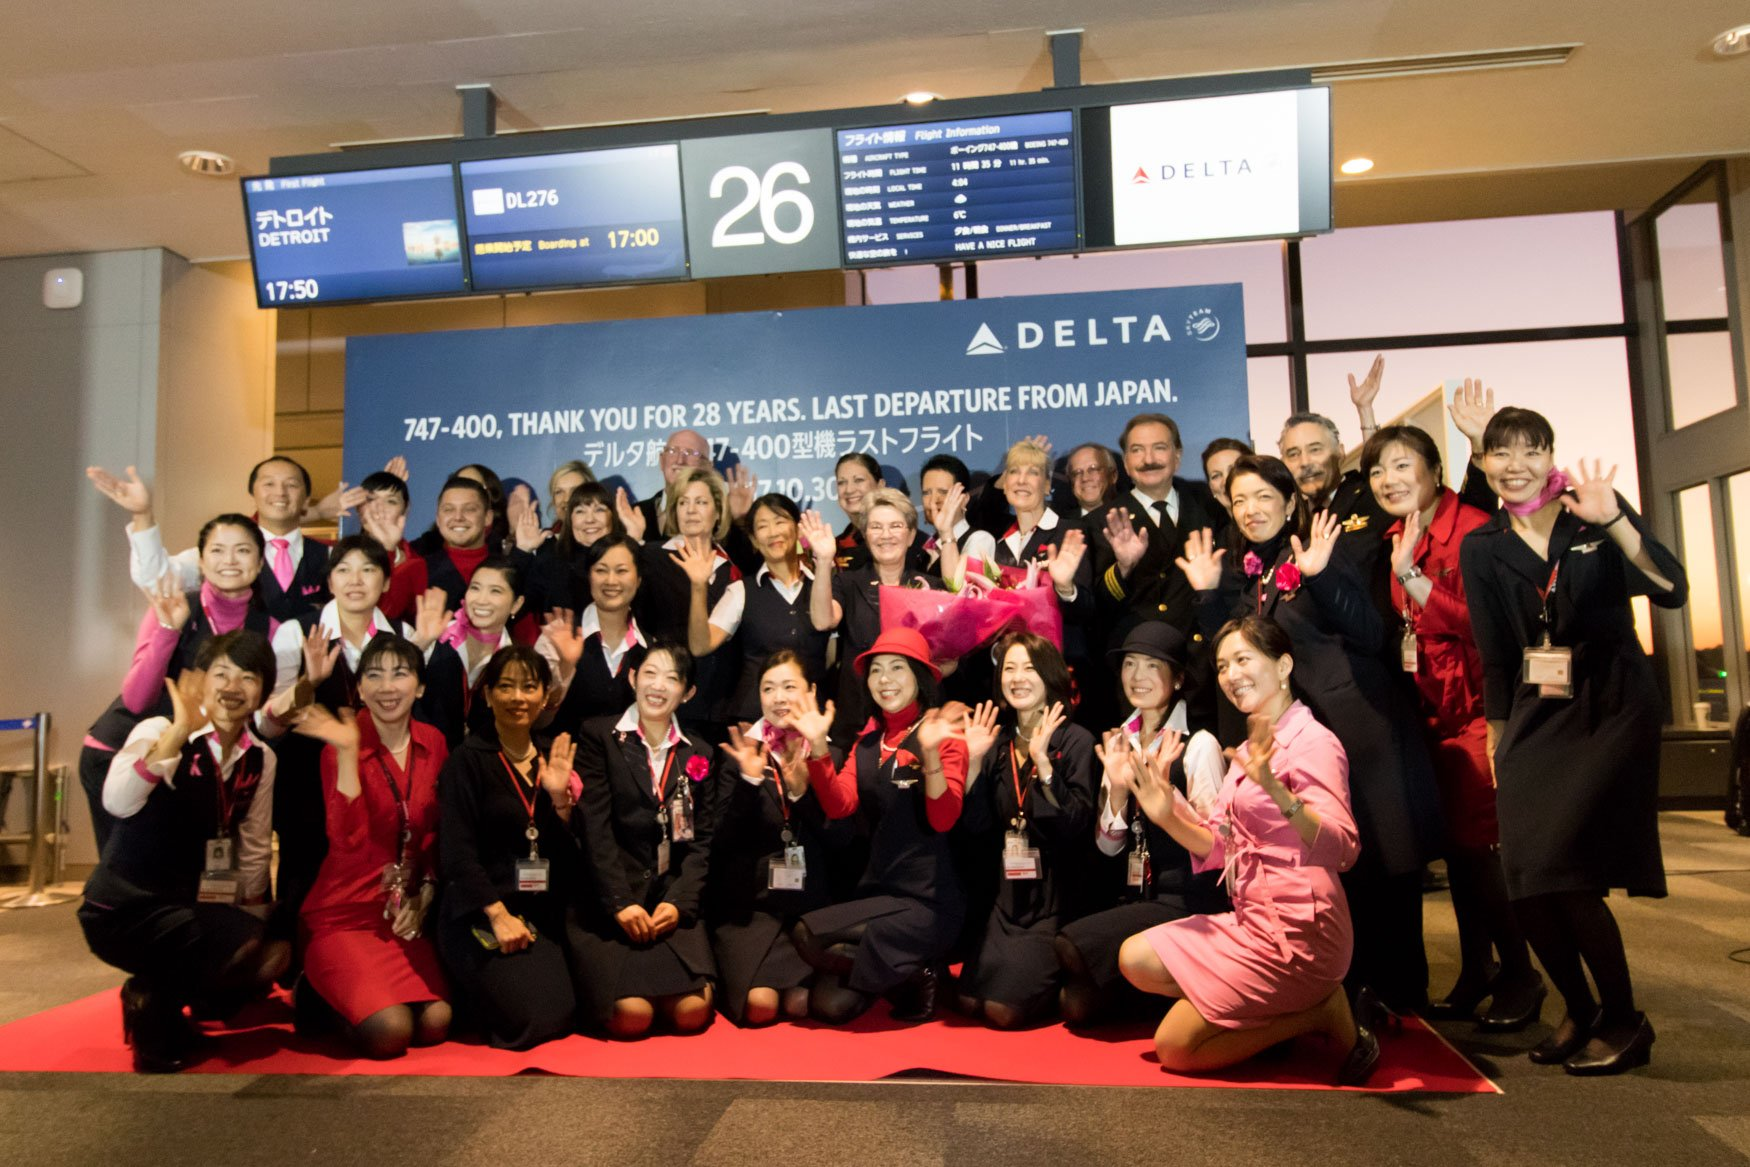 Delta Air Lines 747 Last Flight to Tokyo Crew with Other Delta Staff